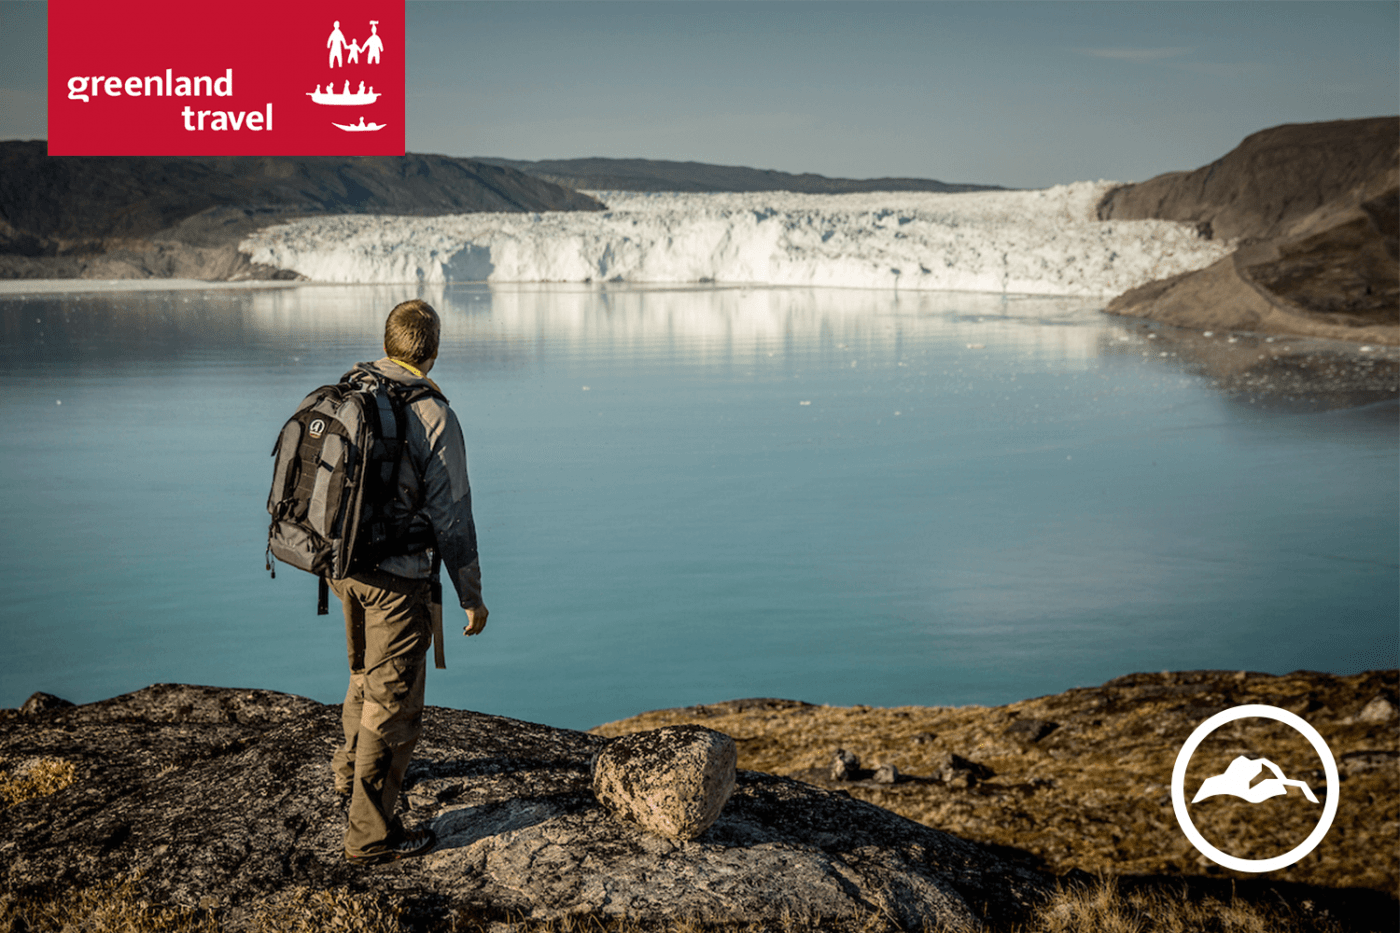 Greenland Travel: Traumreise zur Diskobucht